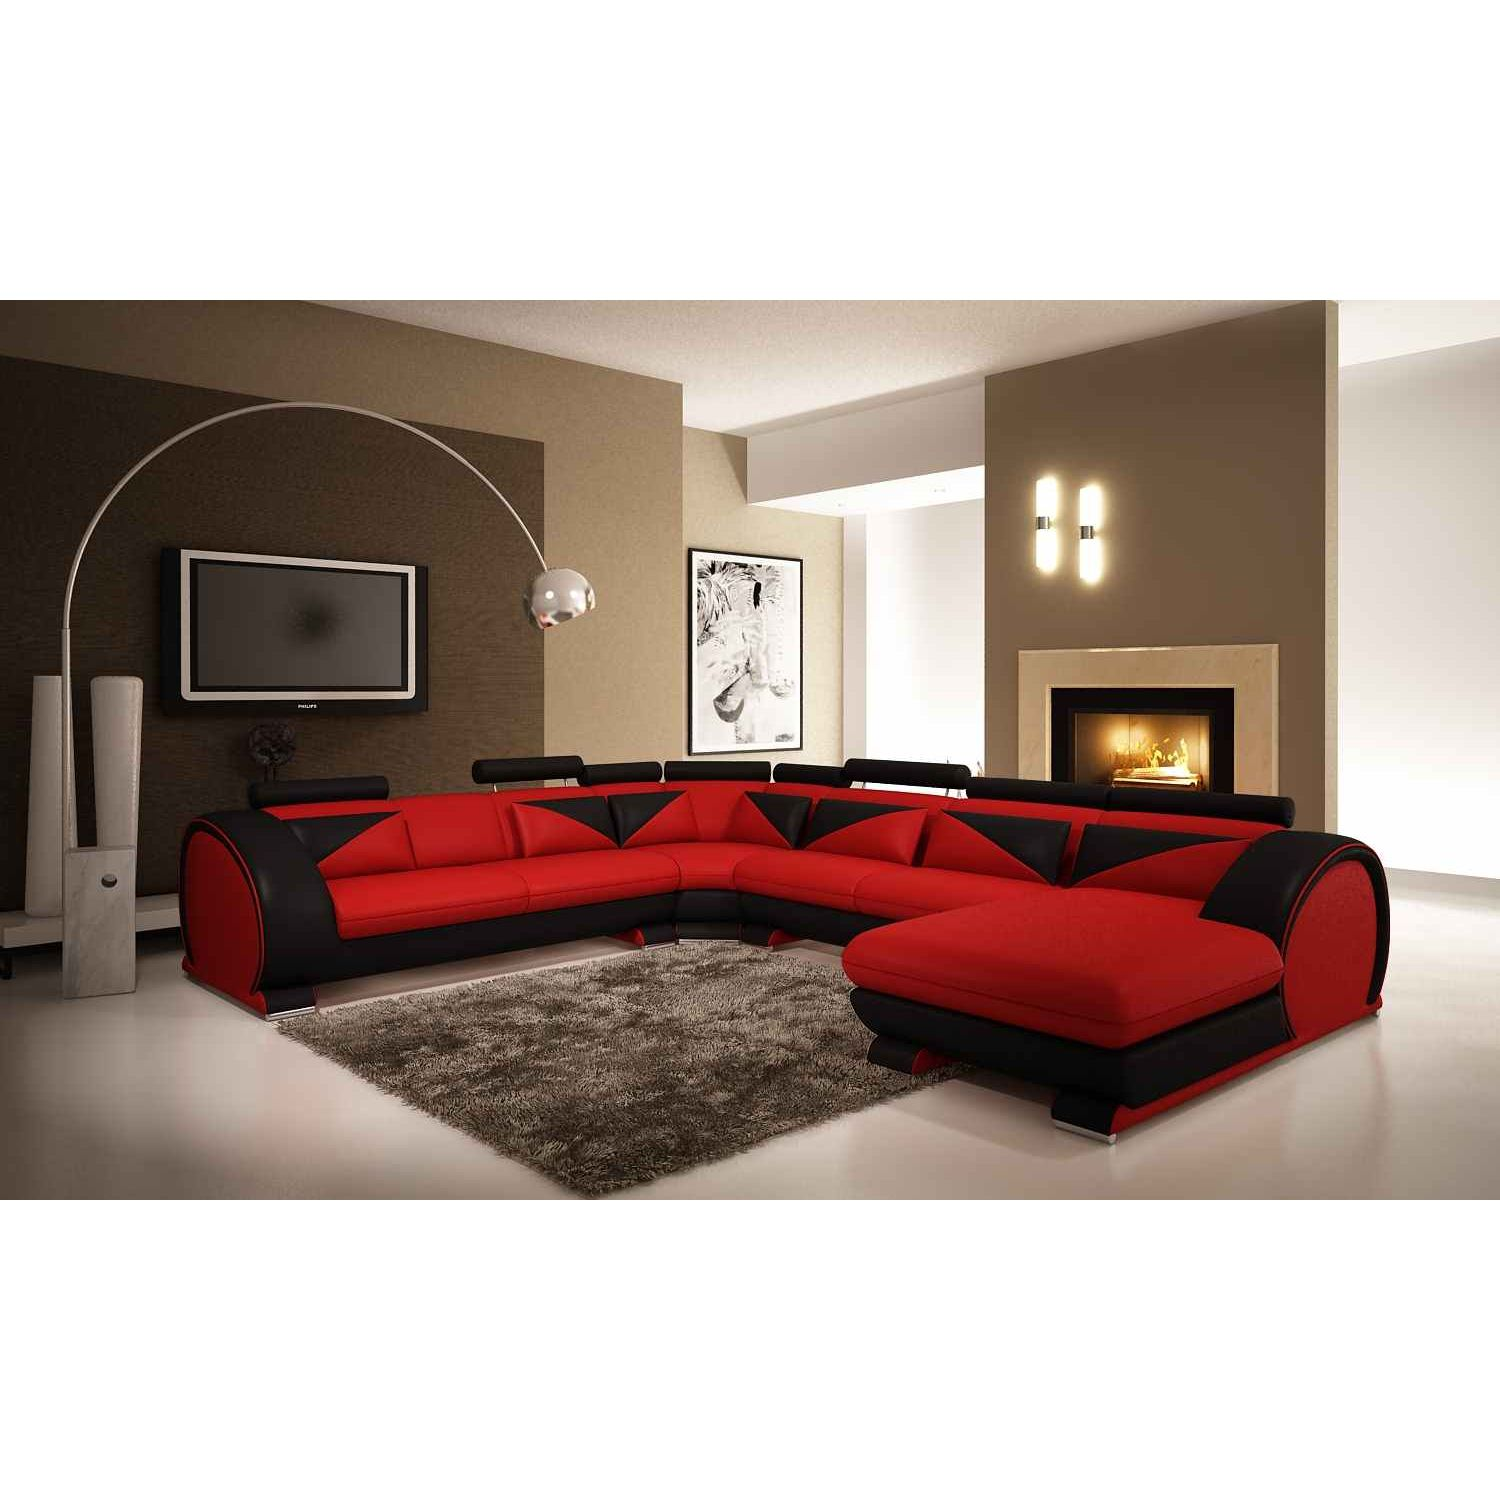 deco in paris canape d angle panoramique cuir rouge et noir miami angl rouge noir pano. Black Bedroom Furniture Sets. Home Design Ideas